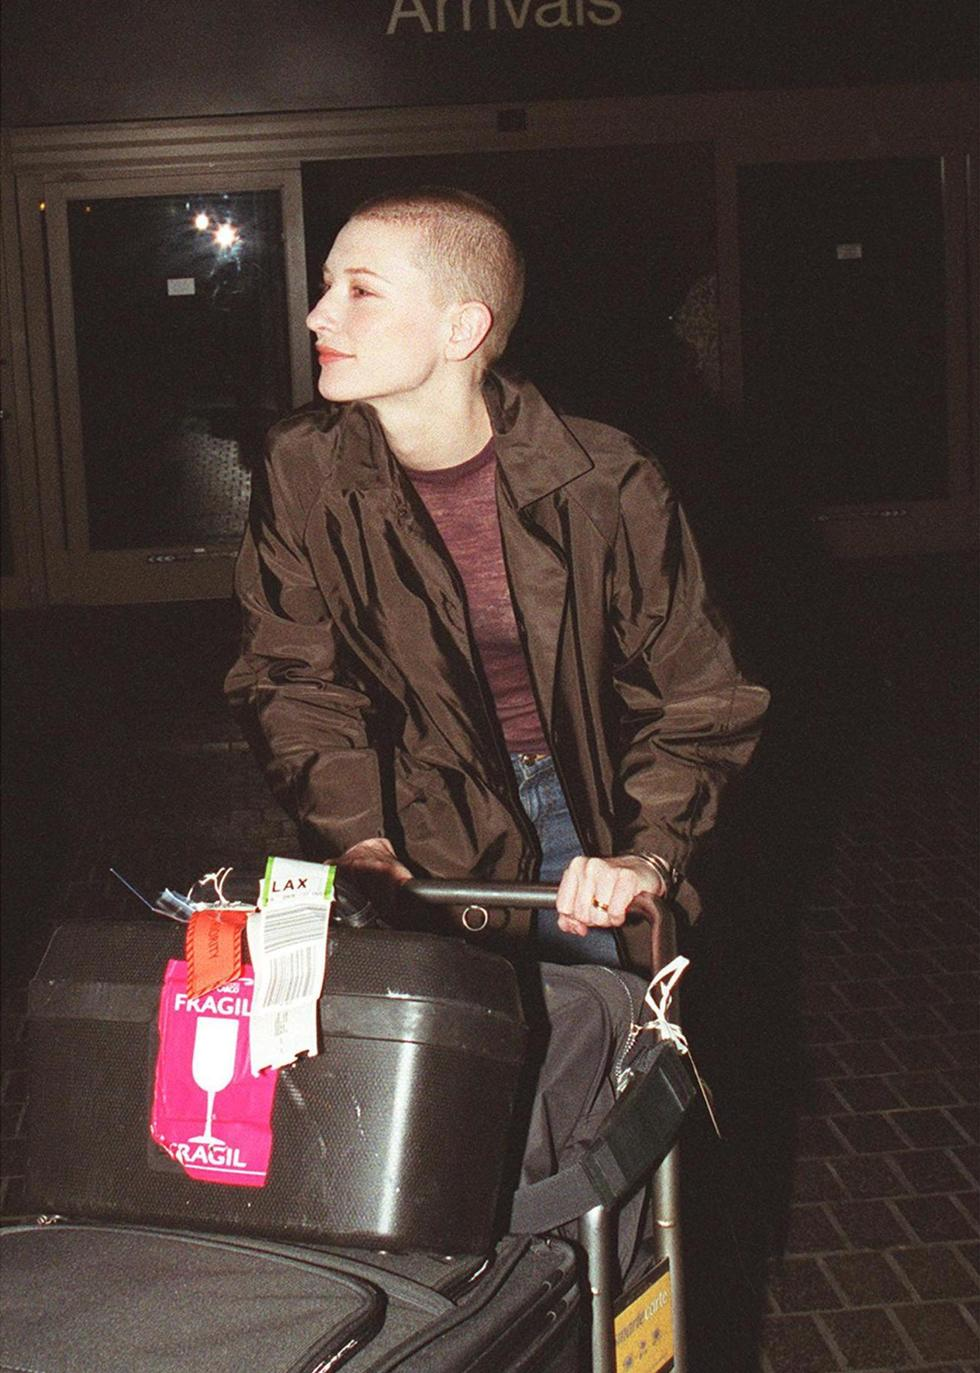 Cate Blanchett shaved all of her hair off back in 2000 for her role in Heaven